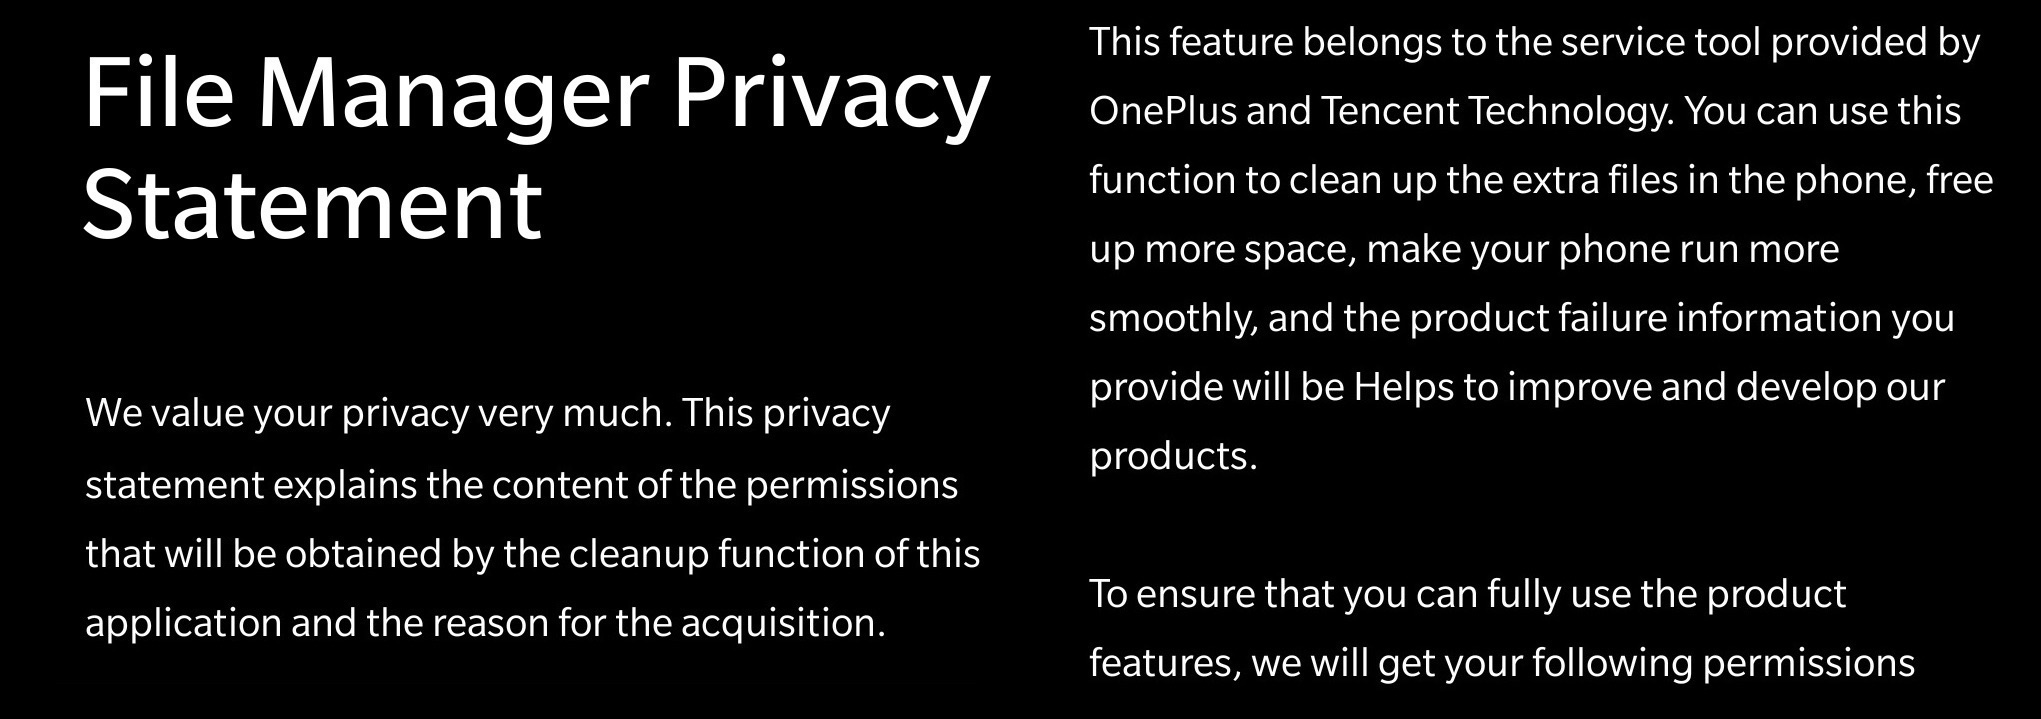 File Manager Privacy Statement